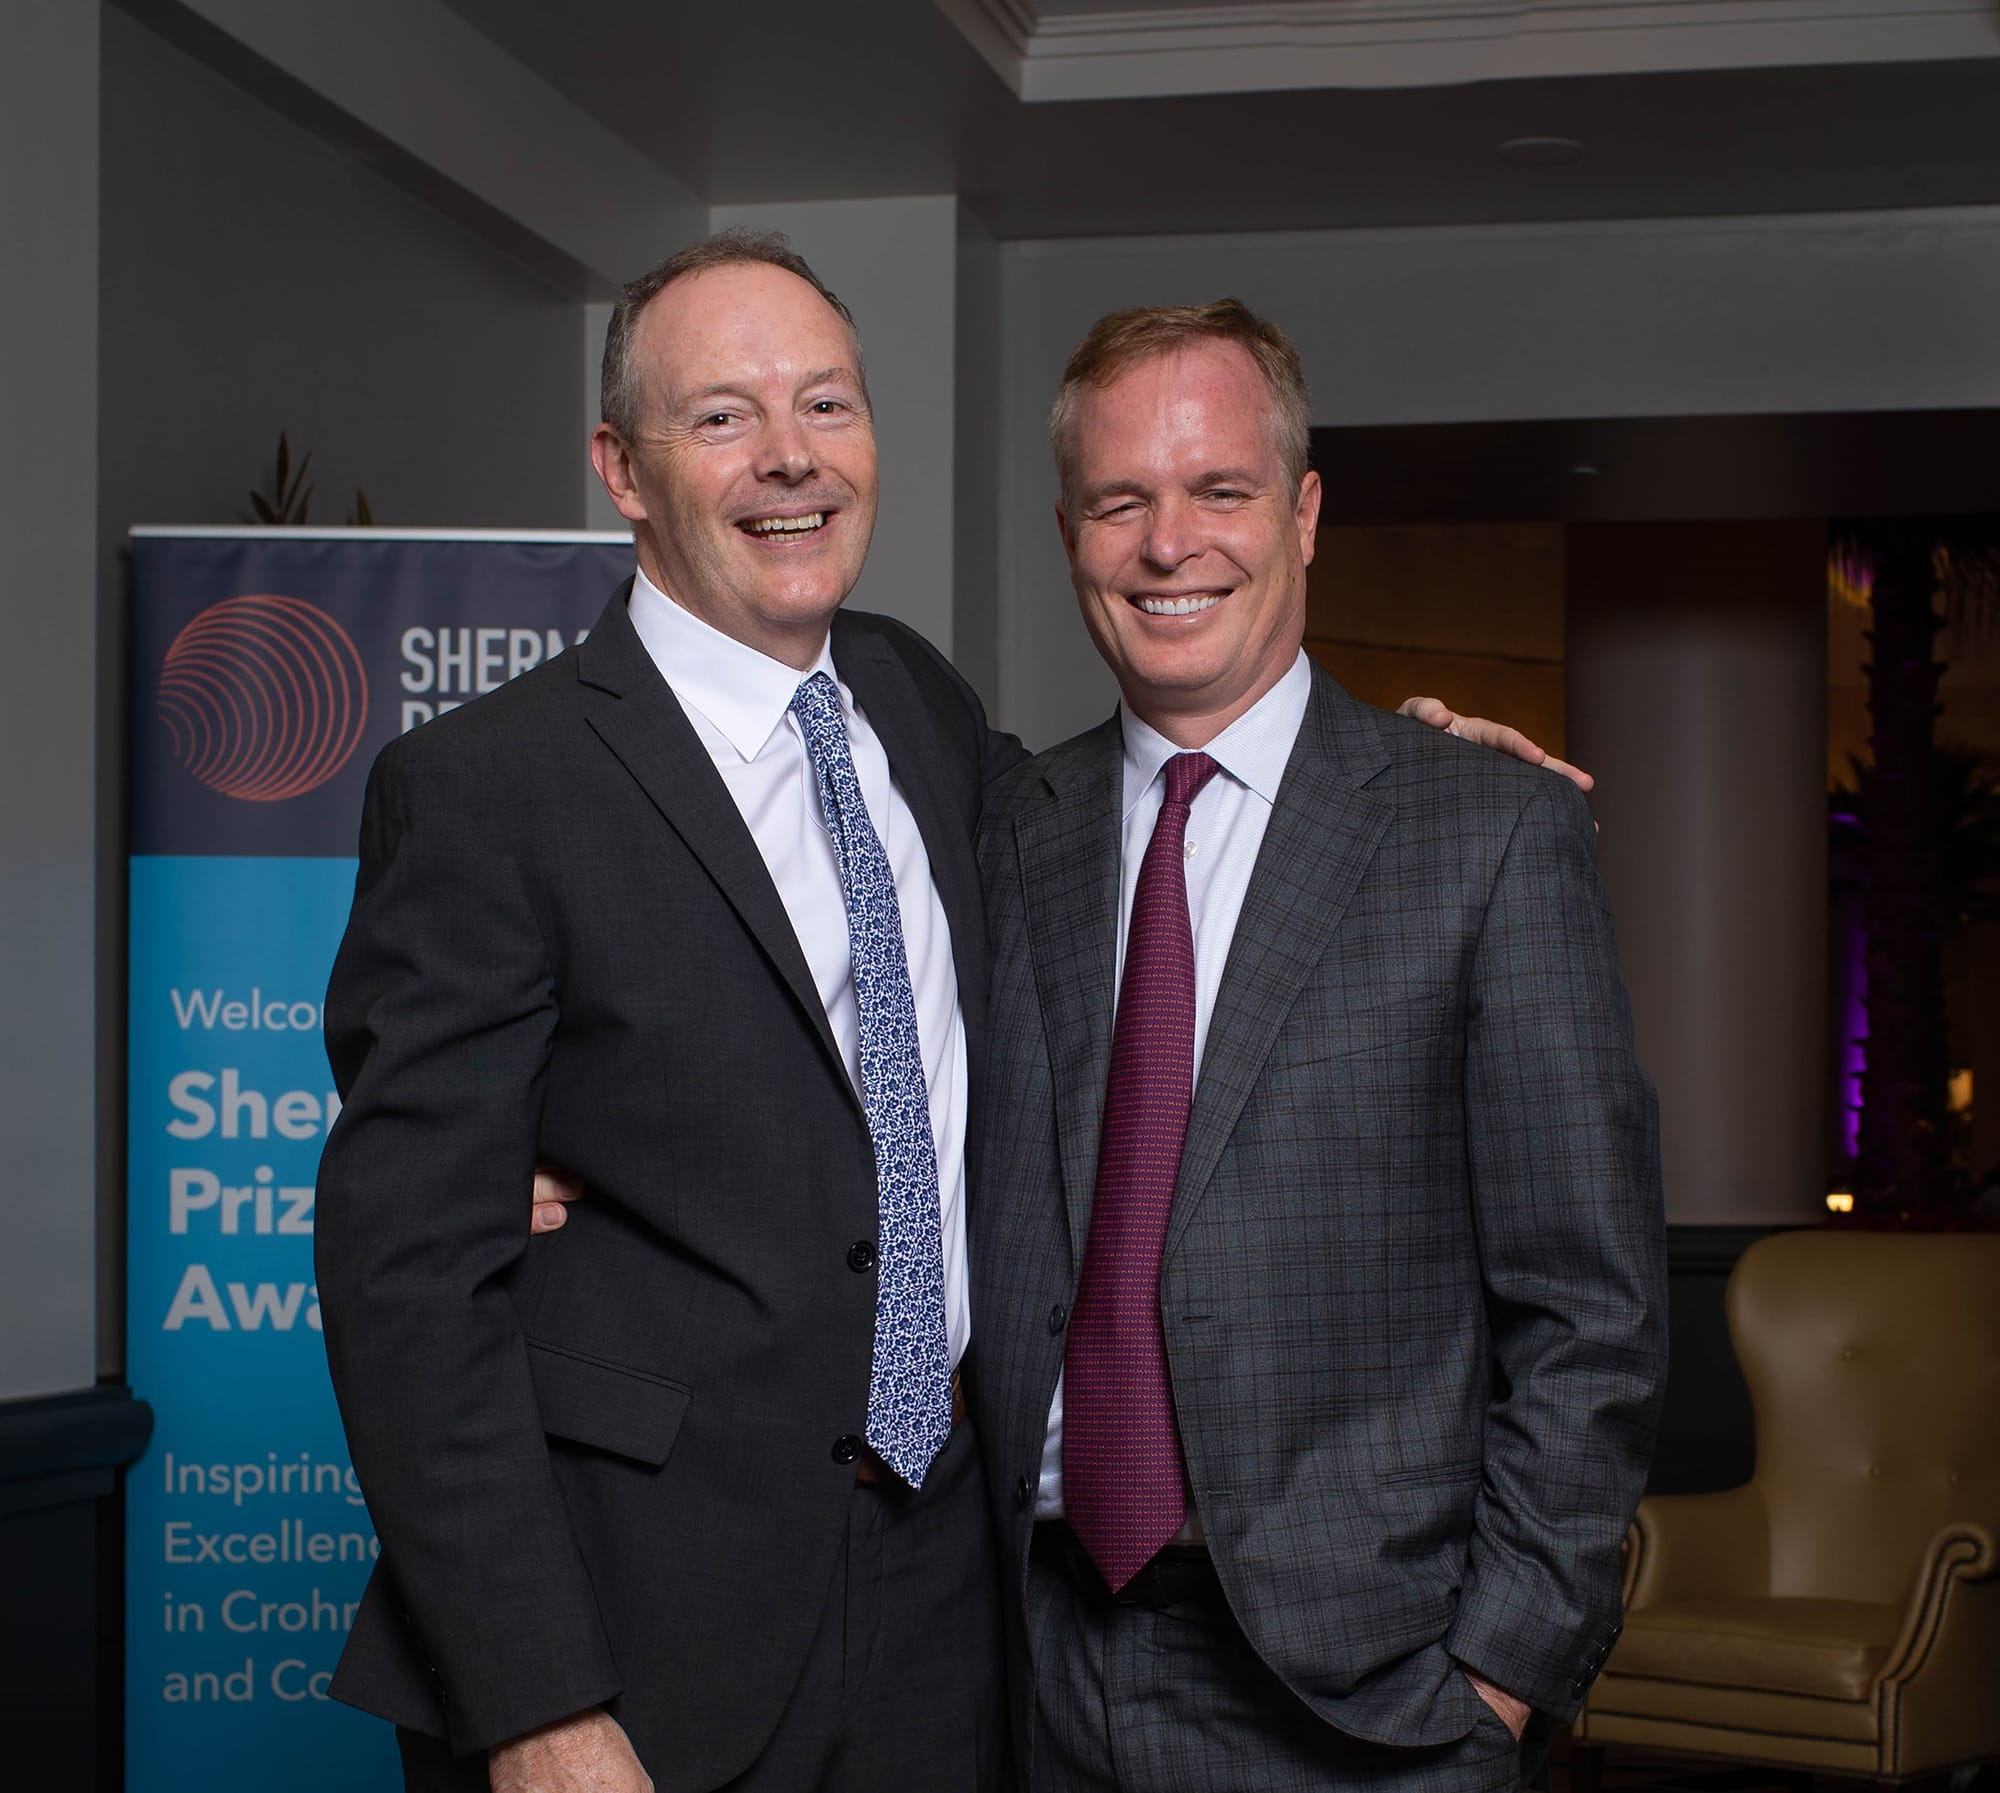 <p>2019 Selection Committee Chair Dr. Dermot McGovern and 2019 Sherman Prize Recipient Dr. William Sandborn</p>